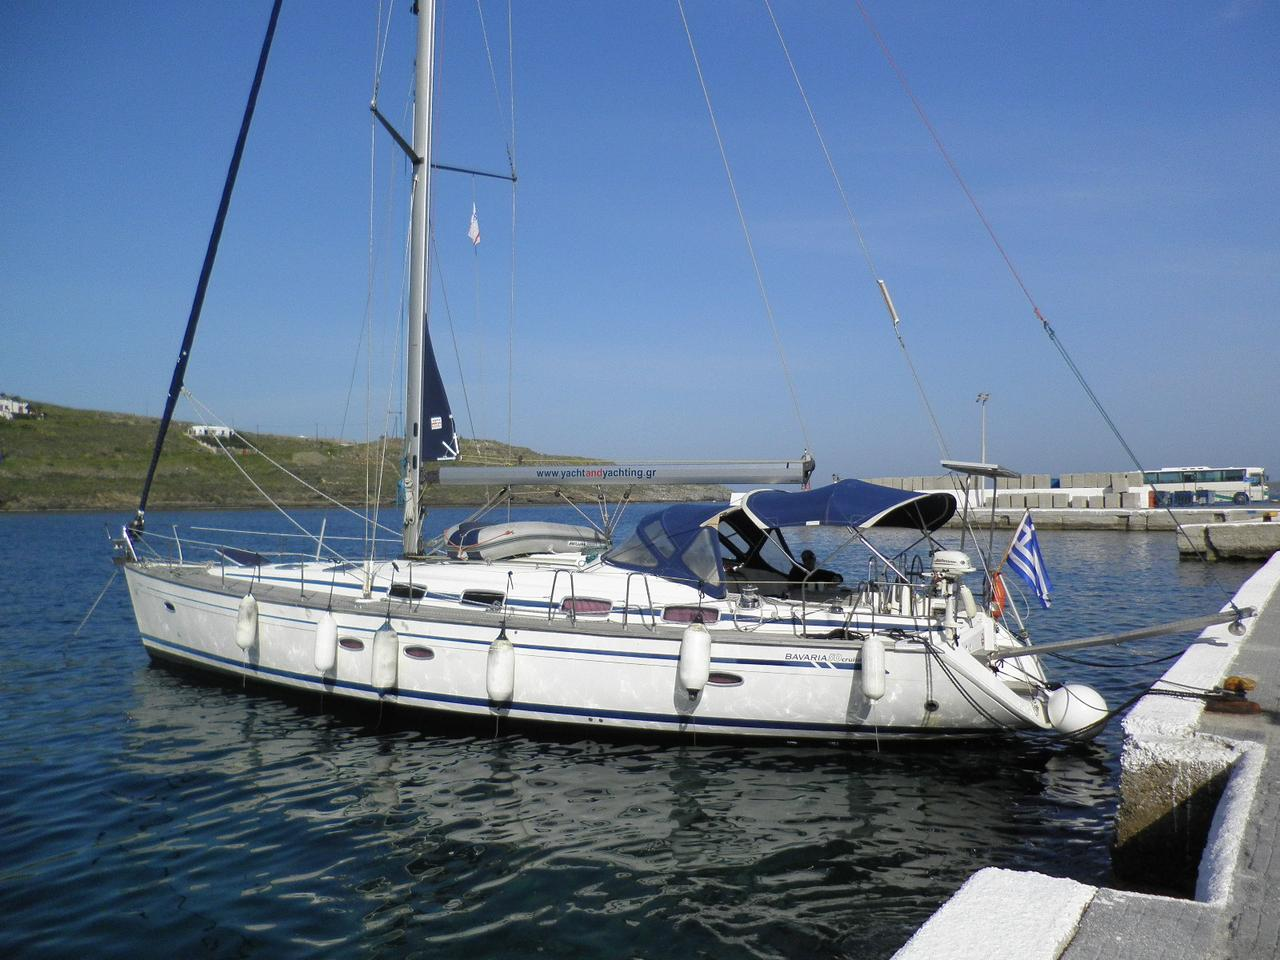 Bavaria 50 Cruiser - Perseas - renewed 2016